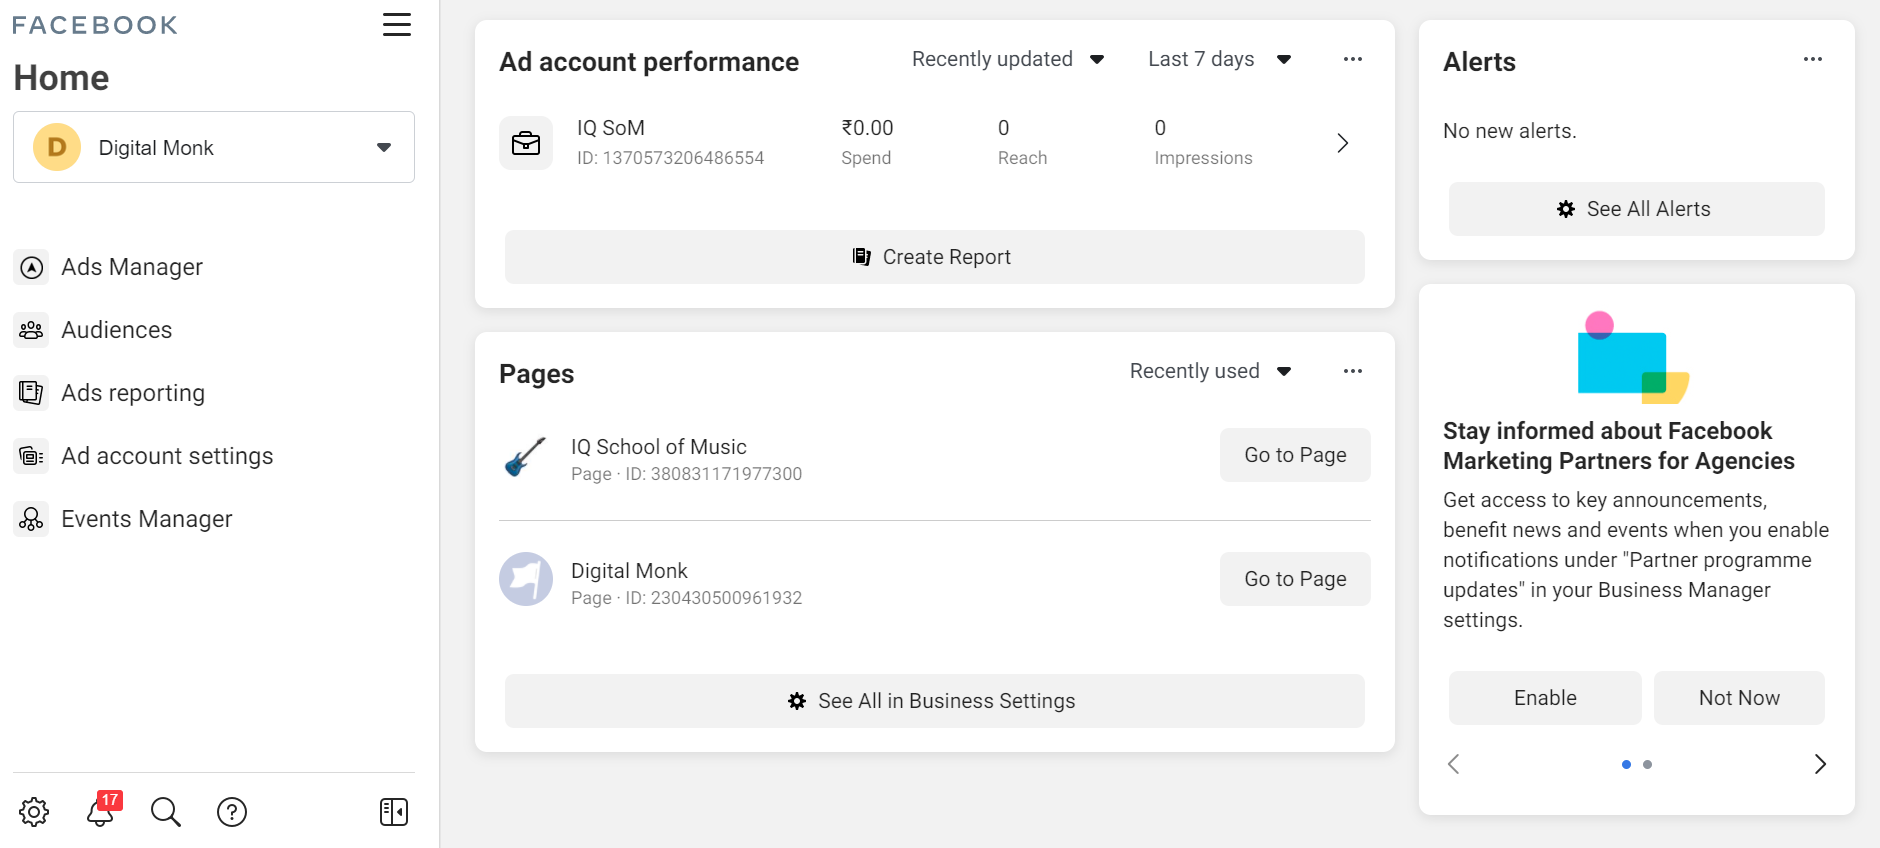 Facebook business page and ad account